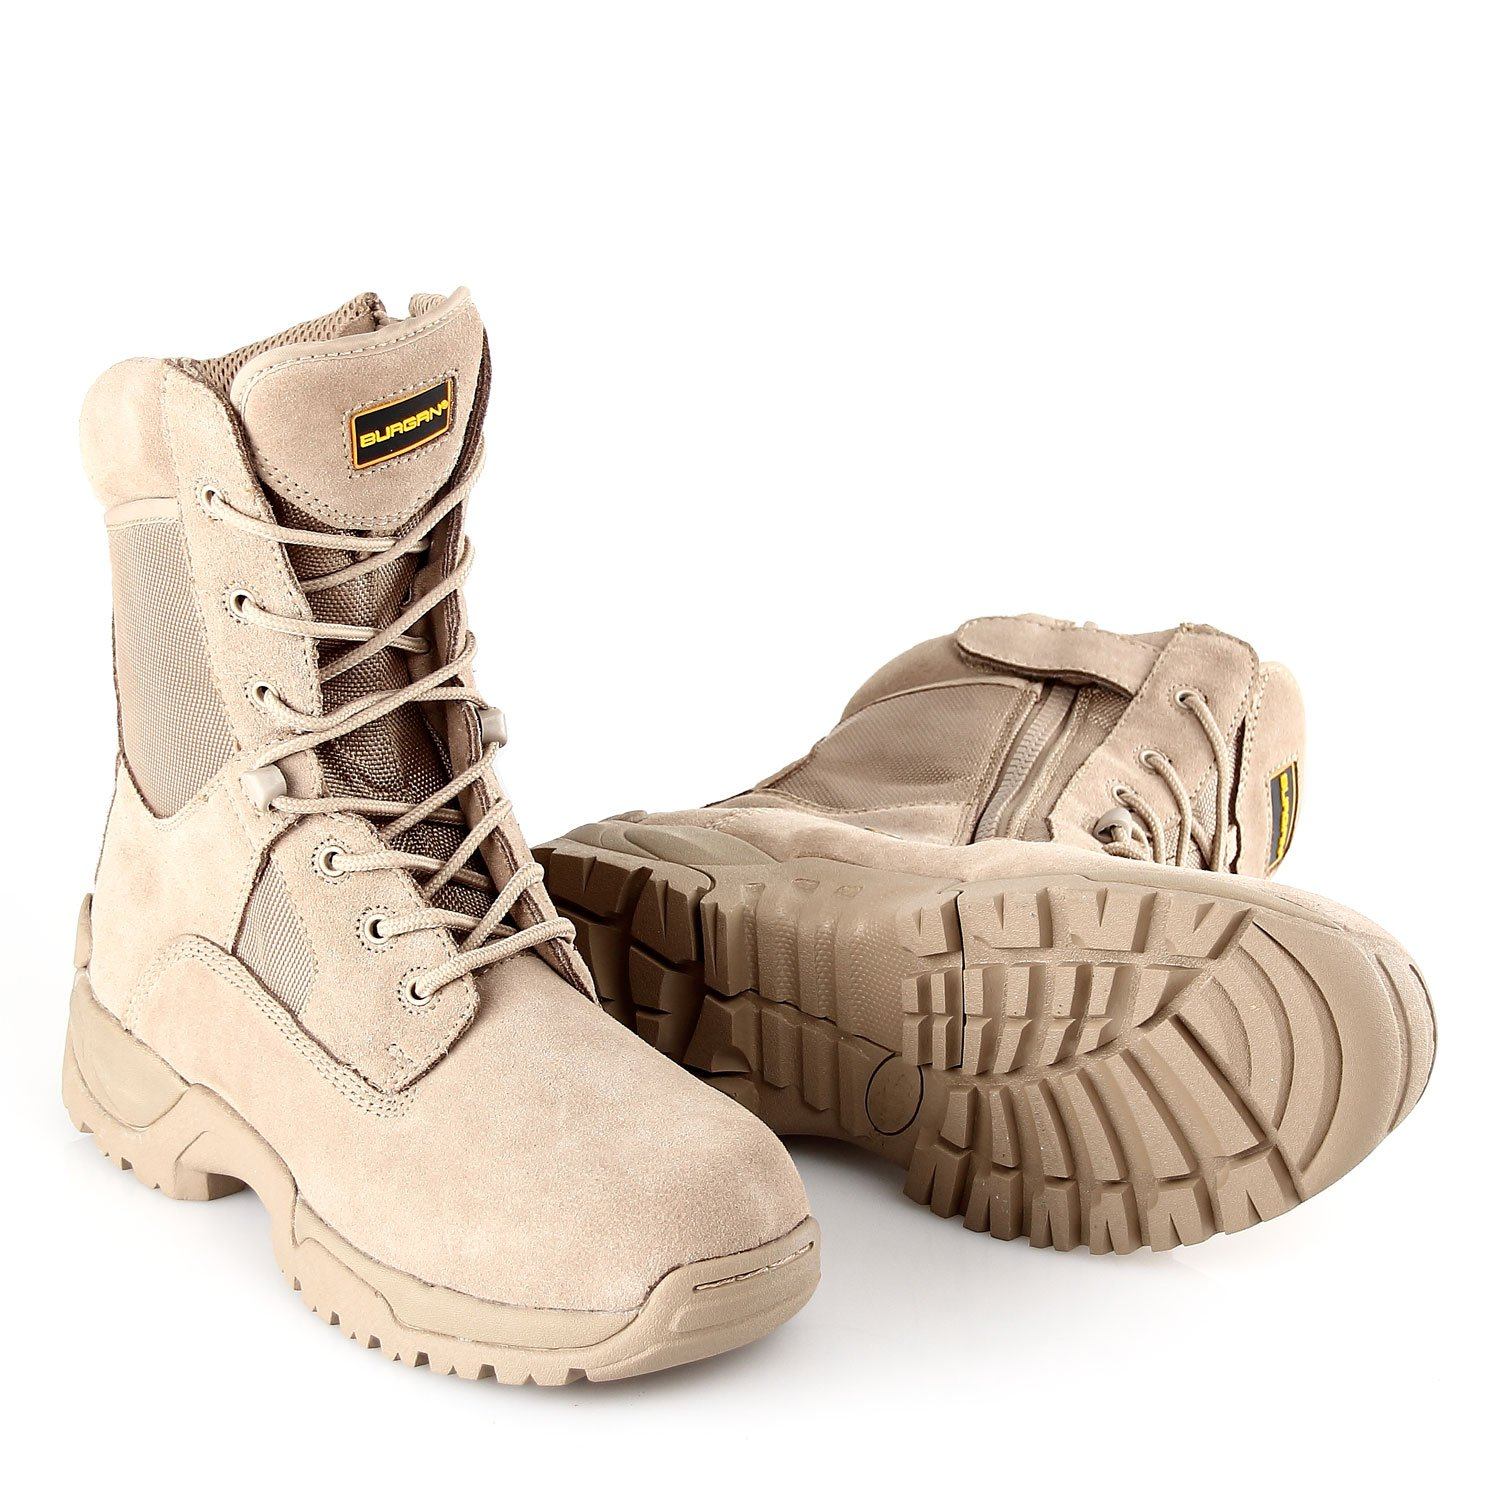 BURGAN 871 TAC Force 8 inch Tactical Zipper Boot B07BSR8Q68 39 (US Mens 6.5 / Ladies 7.5)|Camel